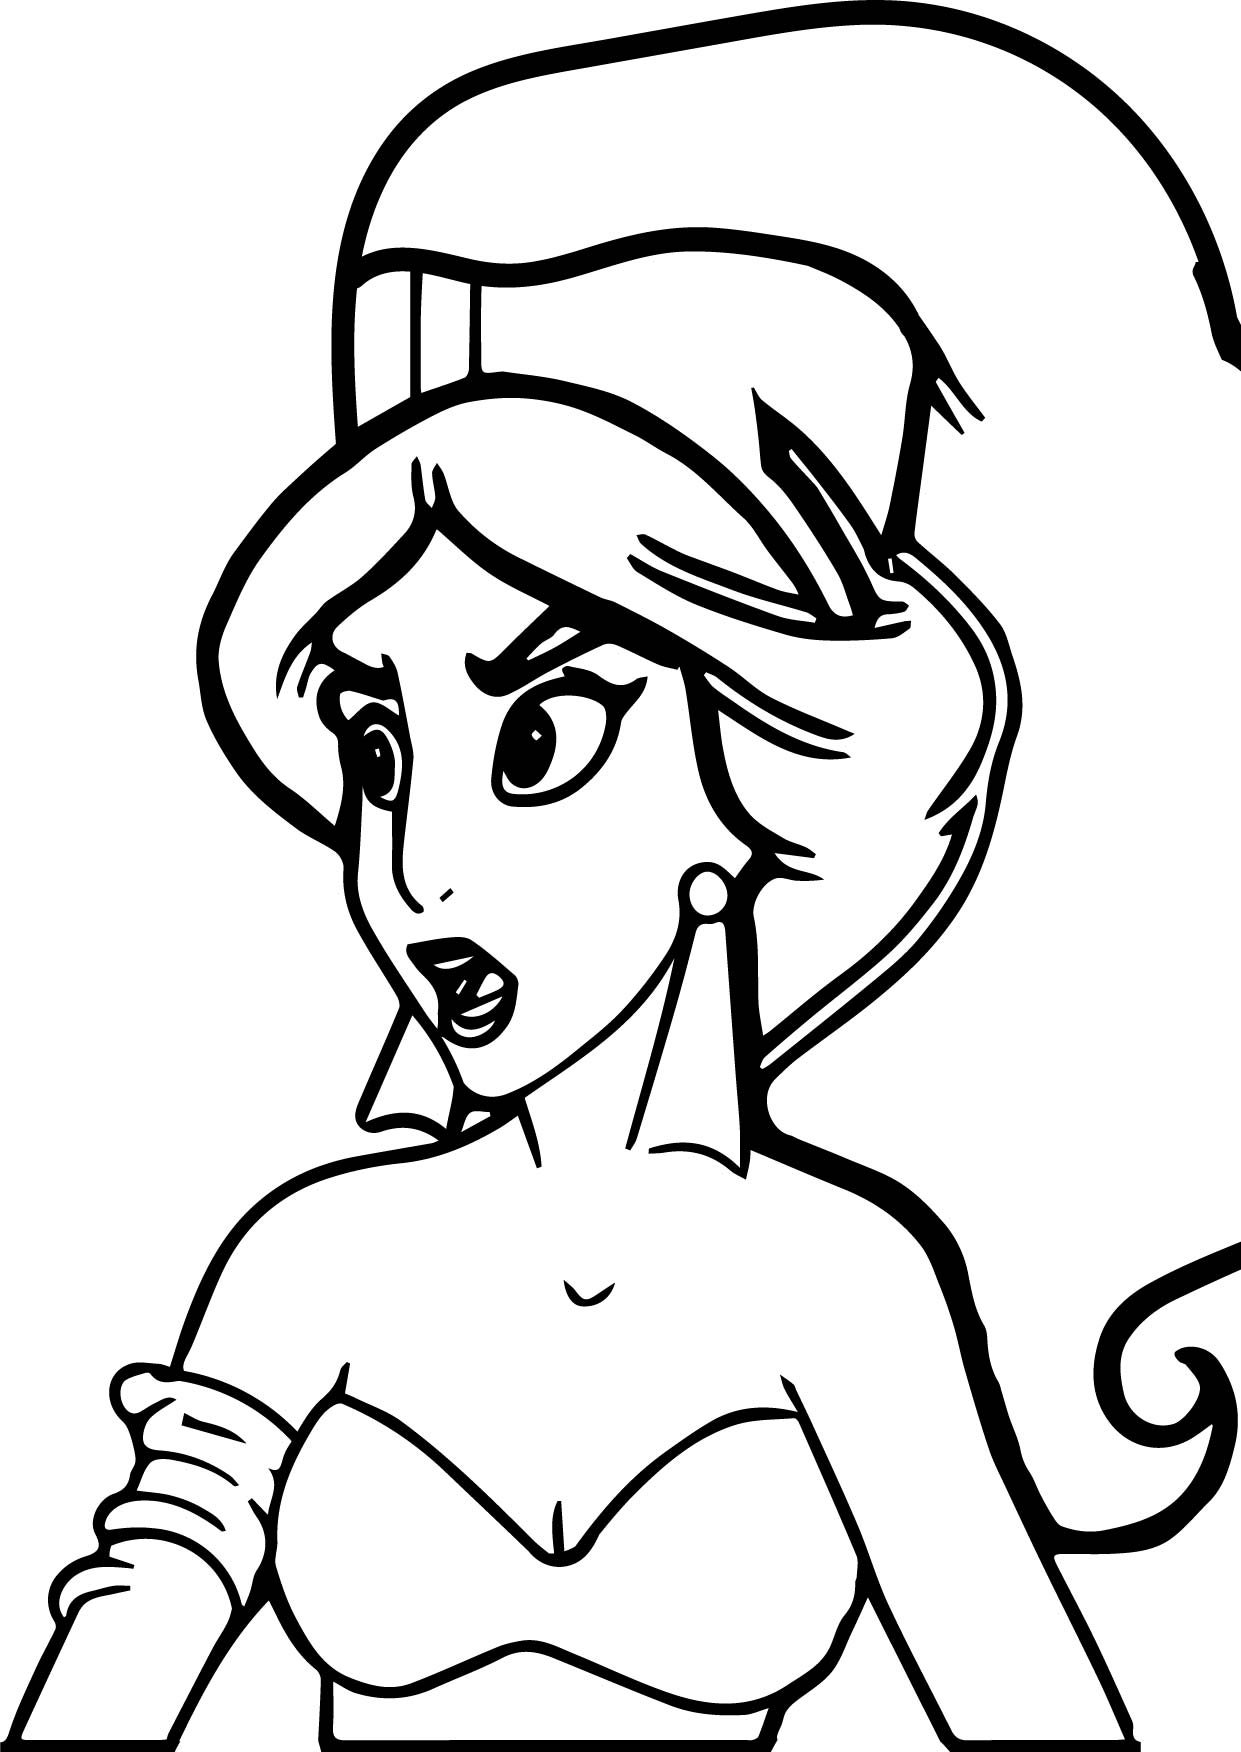 Princess Jasmine From Aladdin Movie Coloring Page | Wecoloringpage